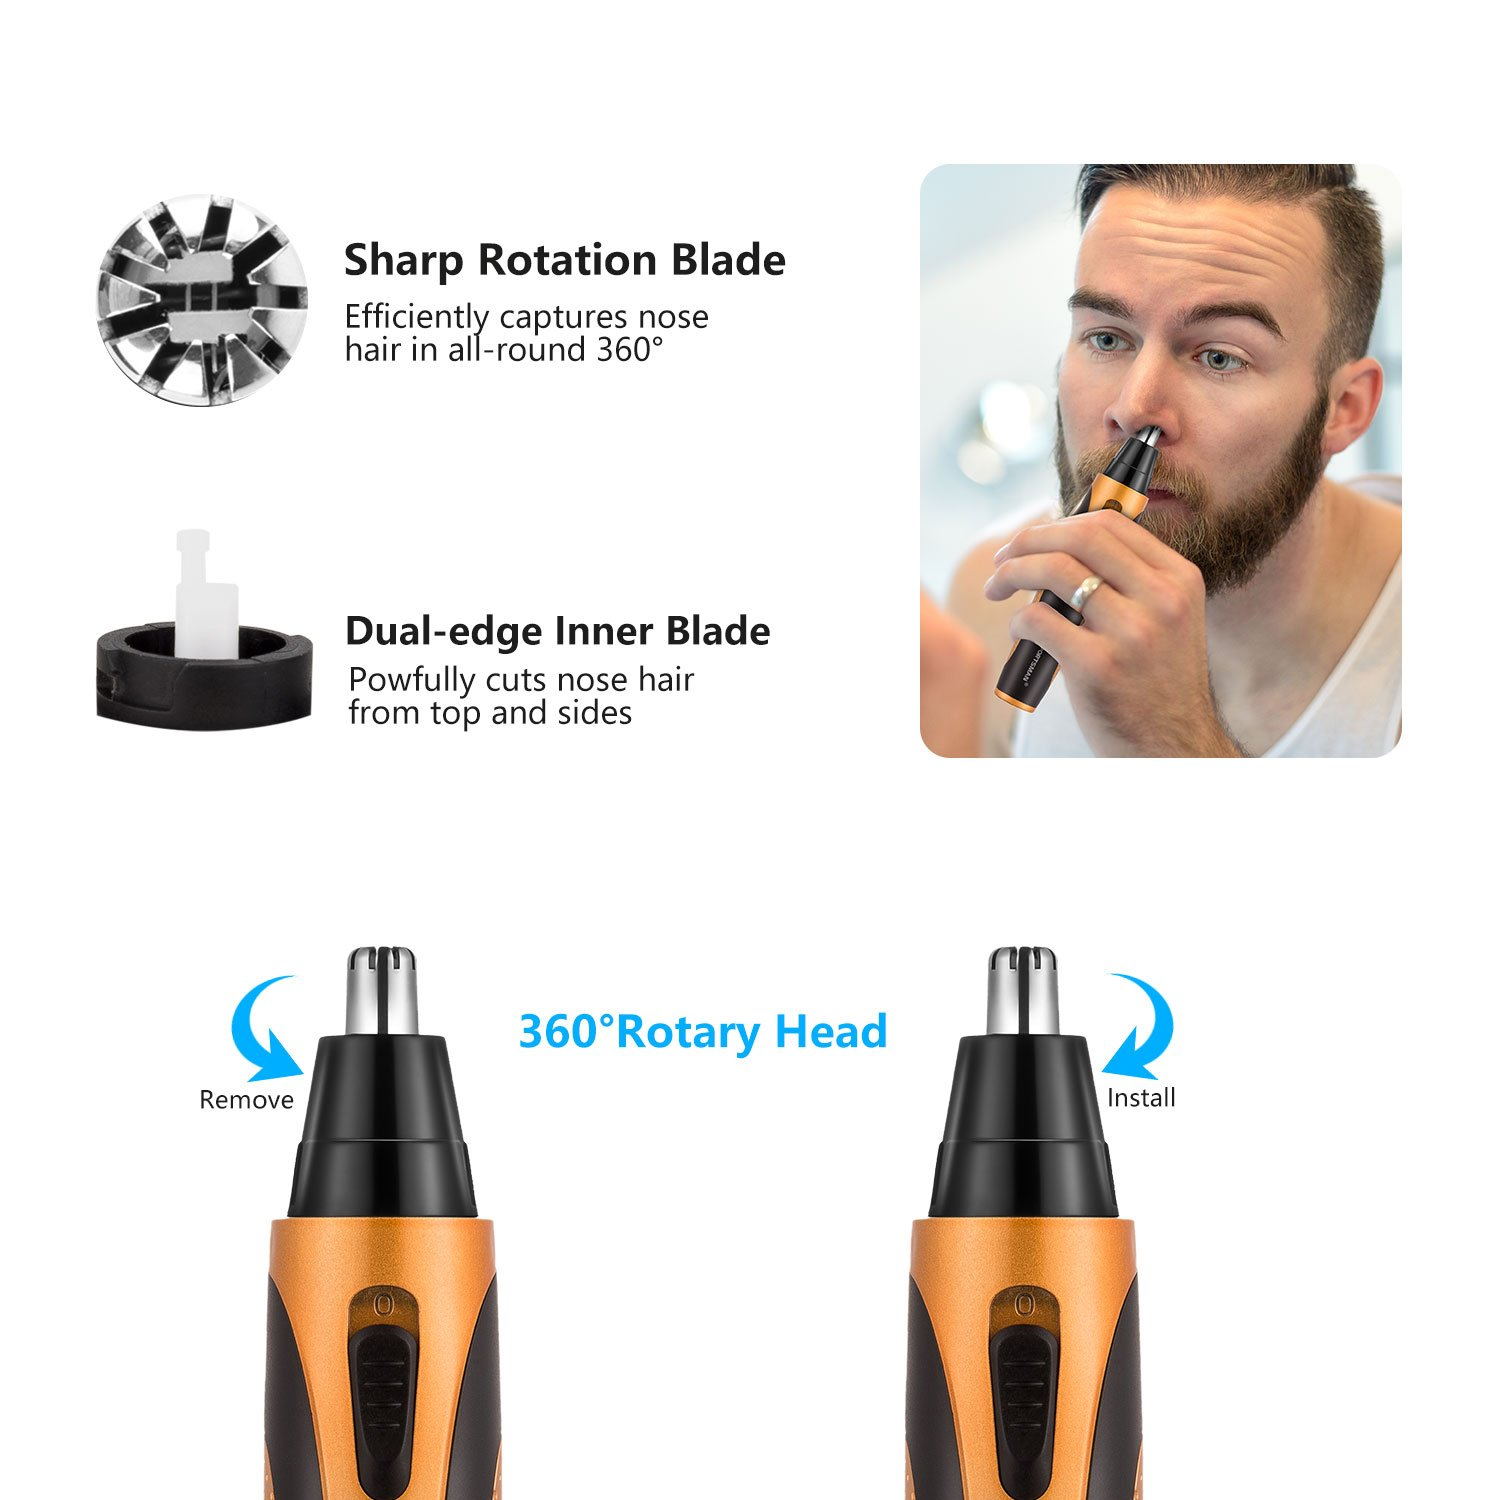 Nose Hair Trimmer, [Newest Version] USB 4 in 1 Rechargeable waterproof Nose Sideburn Eyebrow Beard Ear Hair Trimmer for Men & Women by Sportsman (Image #2)